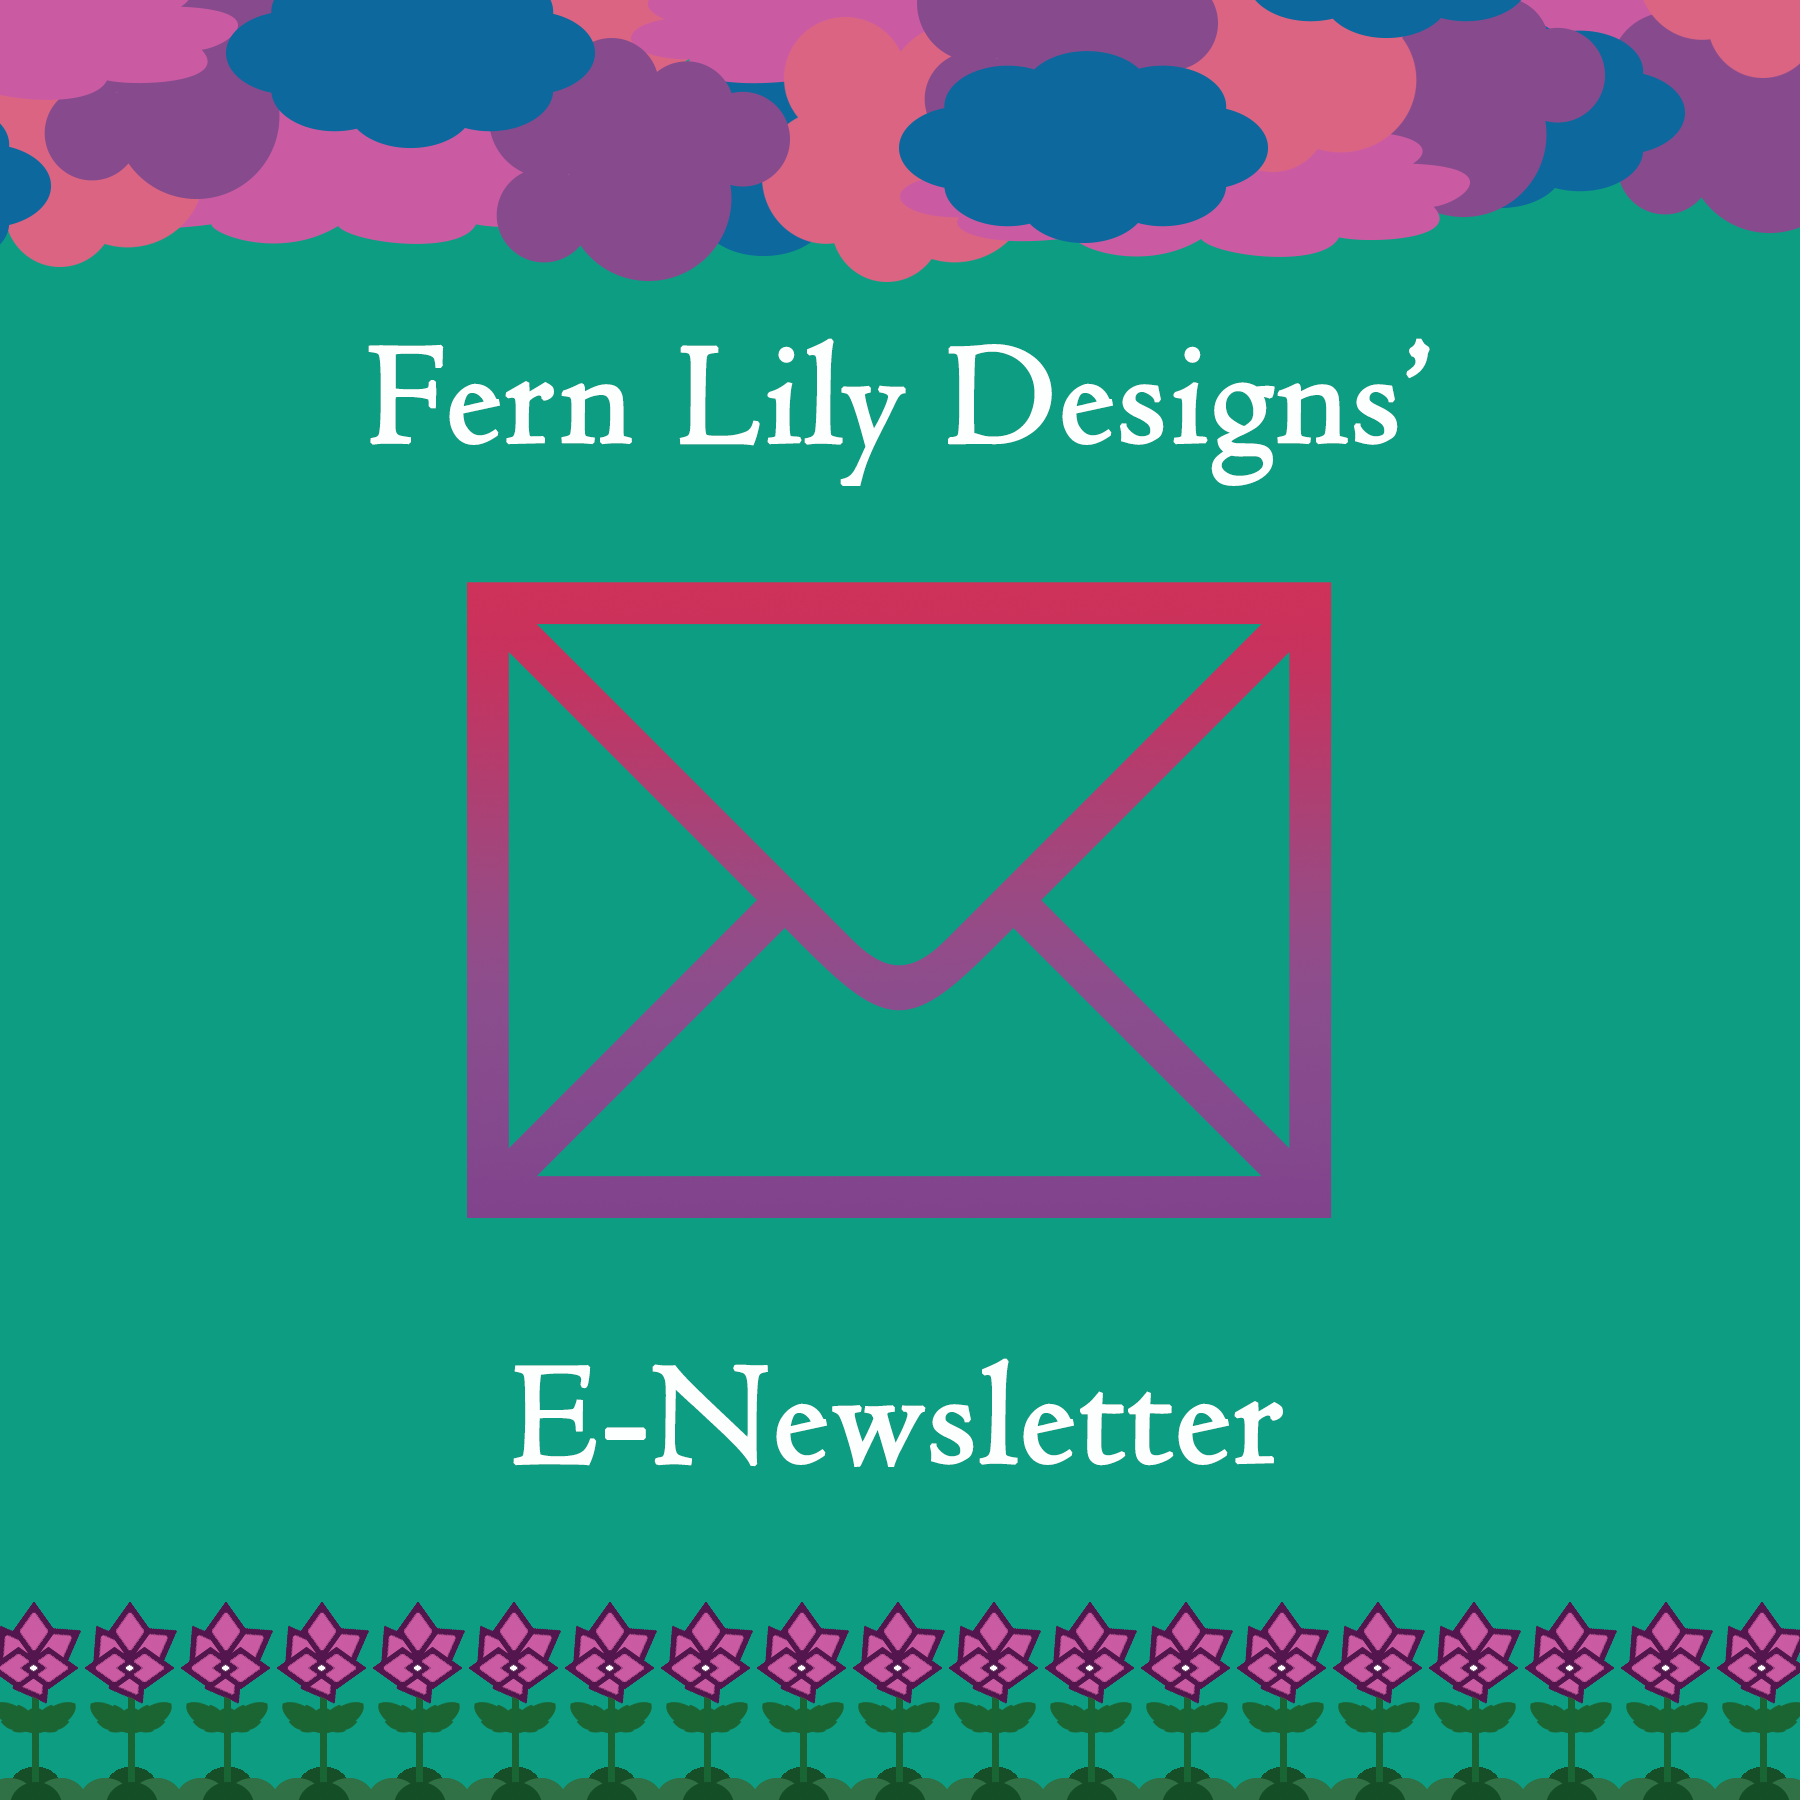 E-Newsletter Image.png